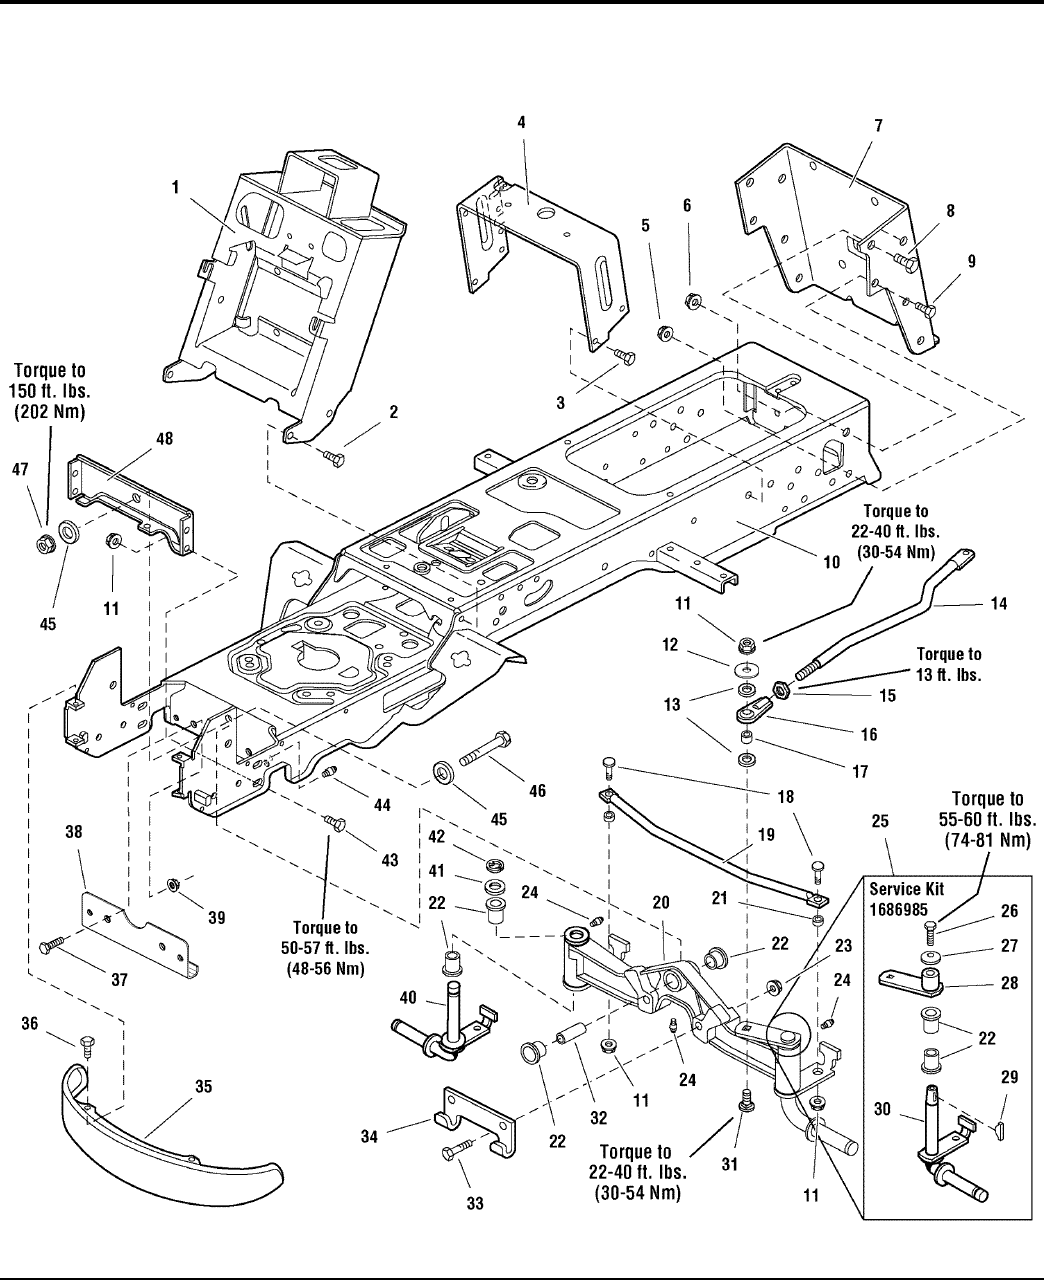 Page 4 of Simplicity Lawn Mower Conquest / 2700 User Guide